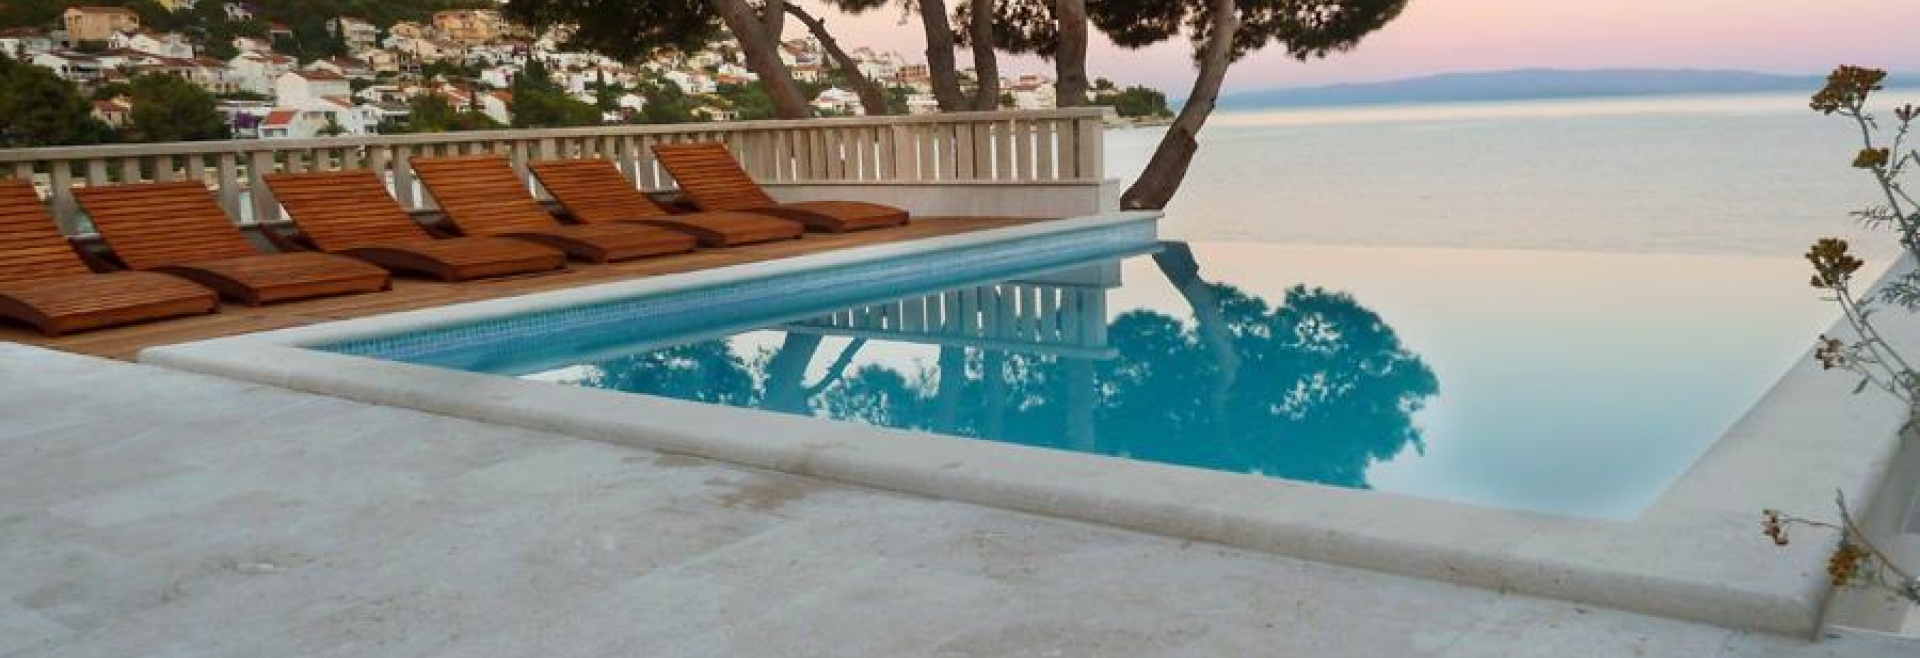 7 Bedrooms, House, Beachfront vacation rental, Pod Luku, 5 Bathrooms, Listing ID 1013